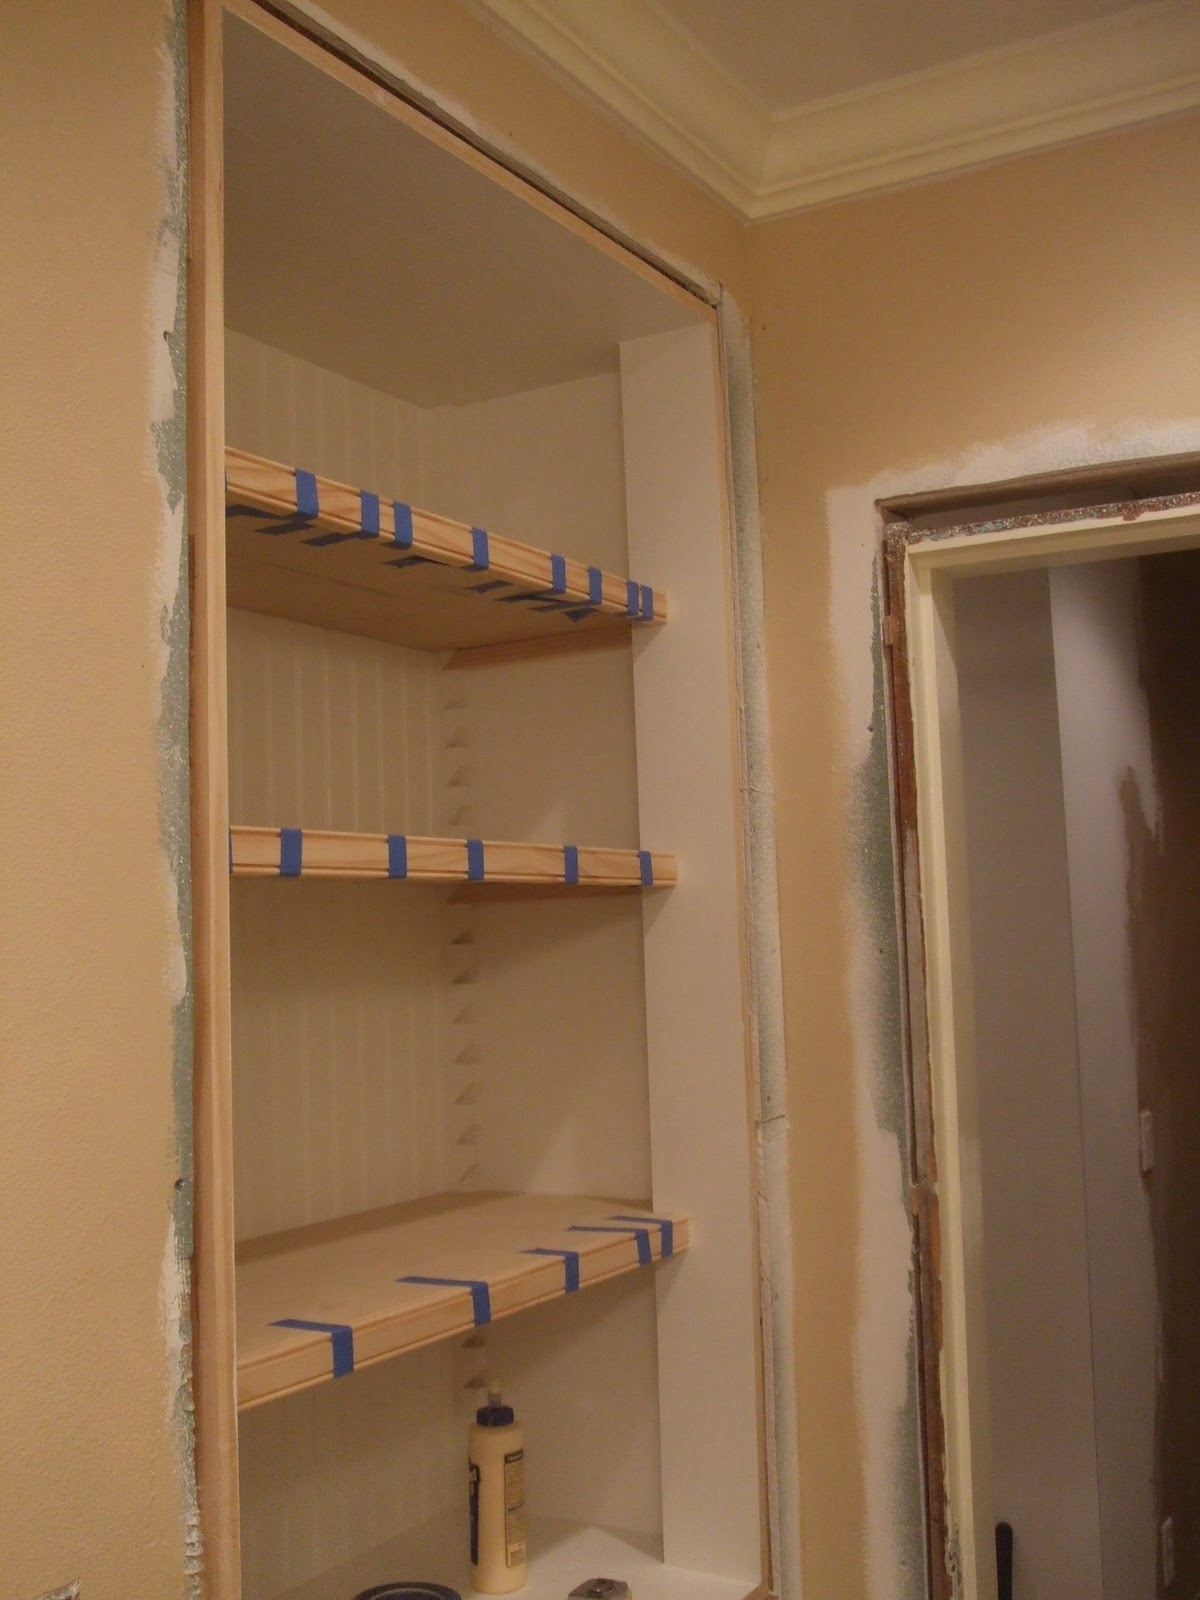 The smiths bathroom closet shelves